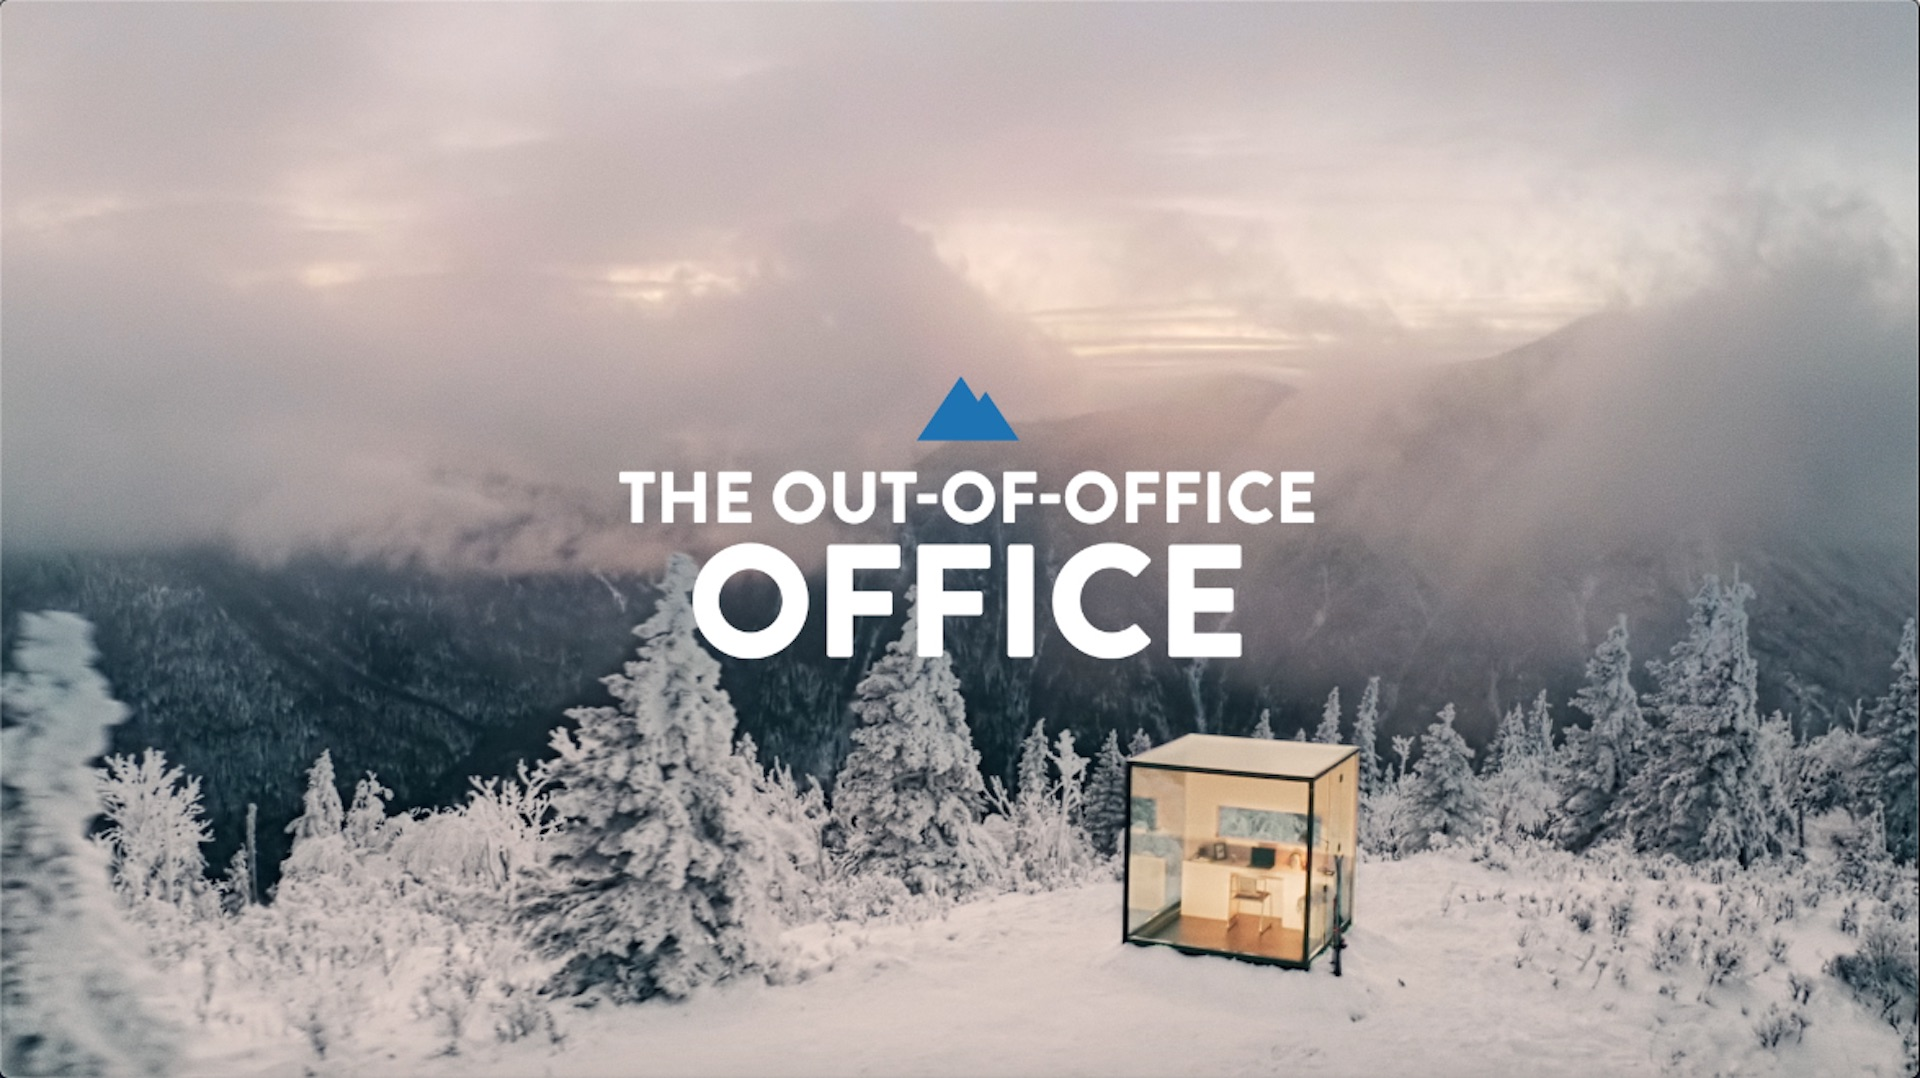 Out-of-office OFFICE